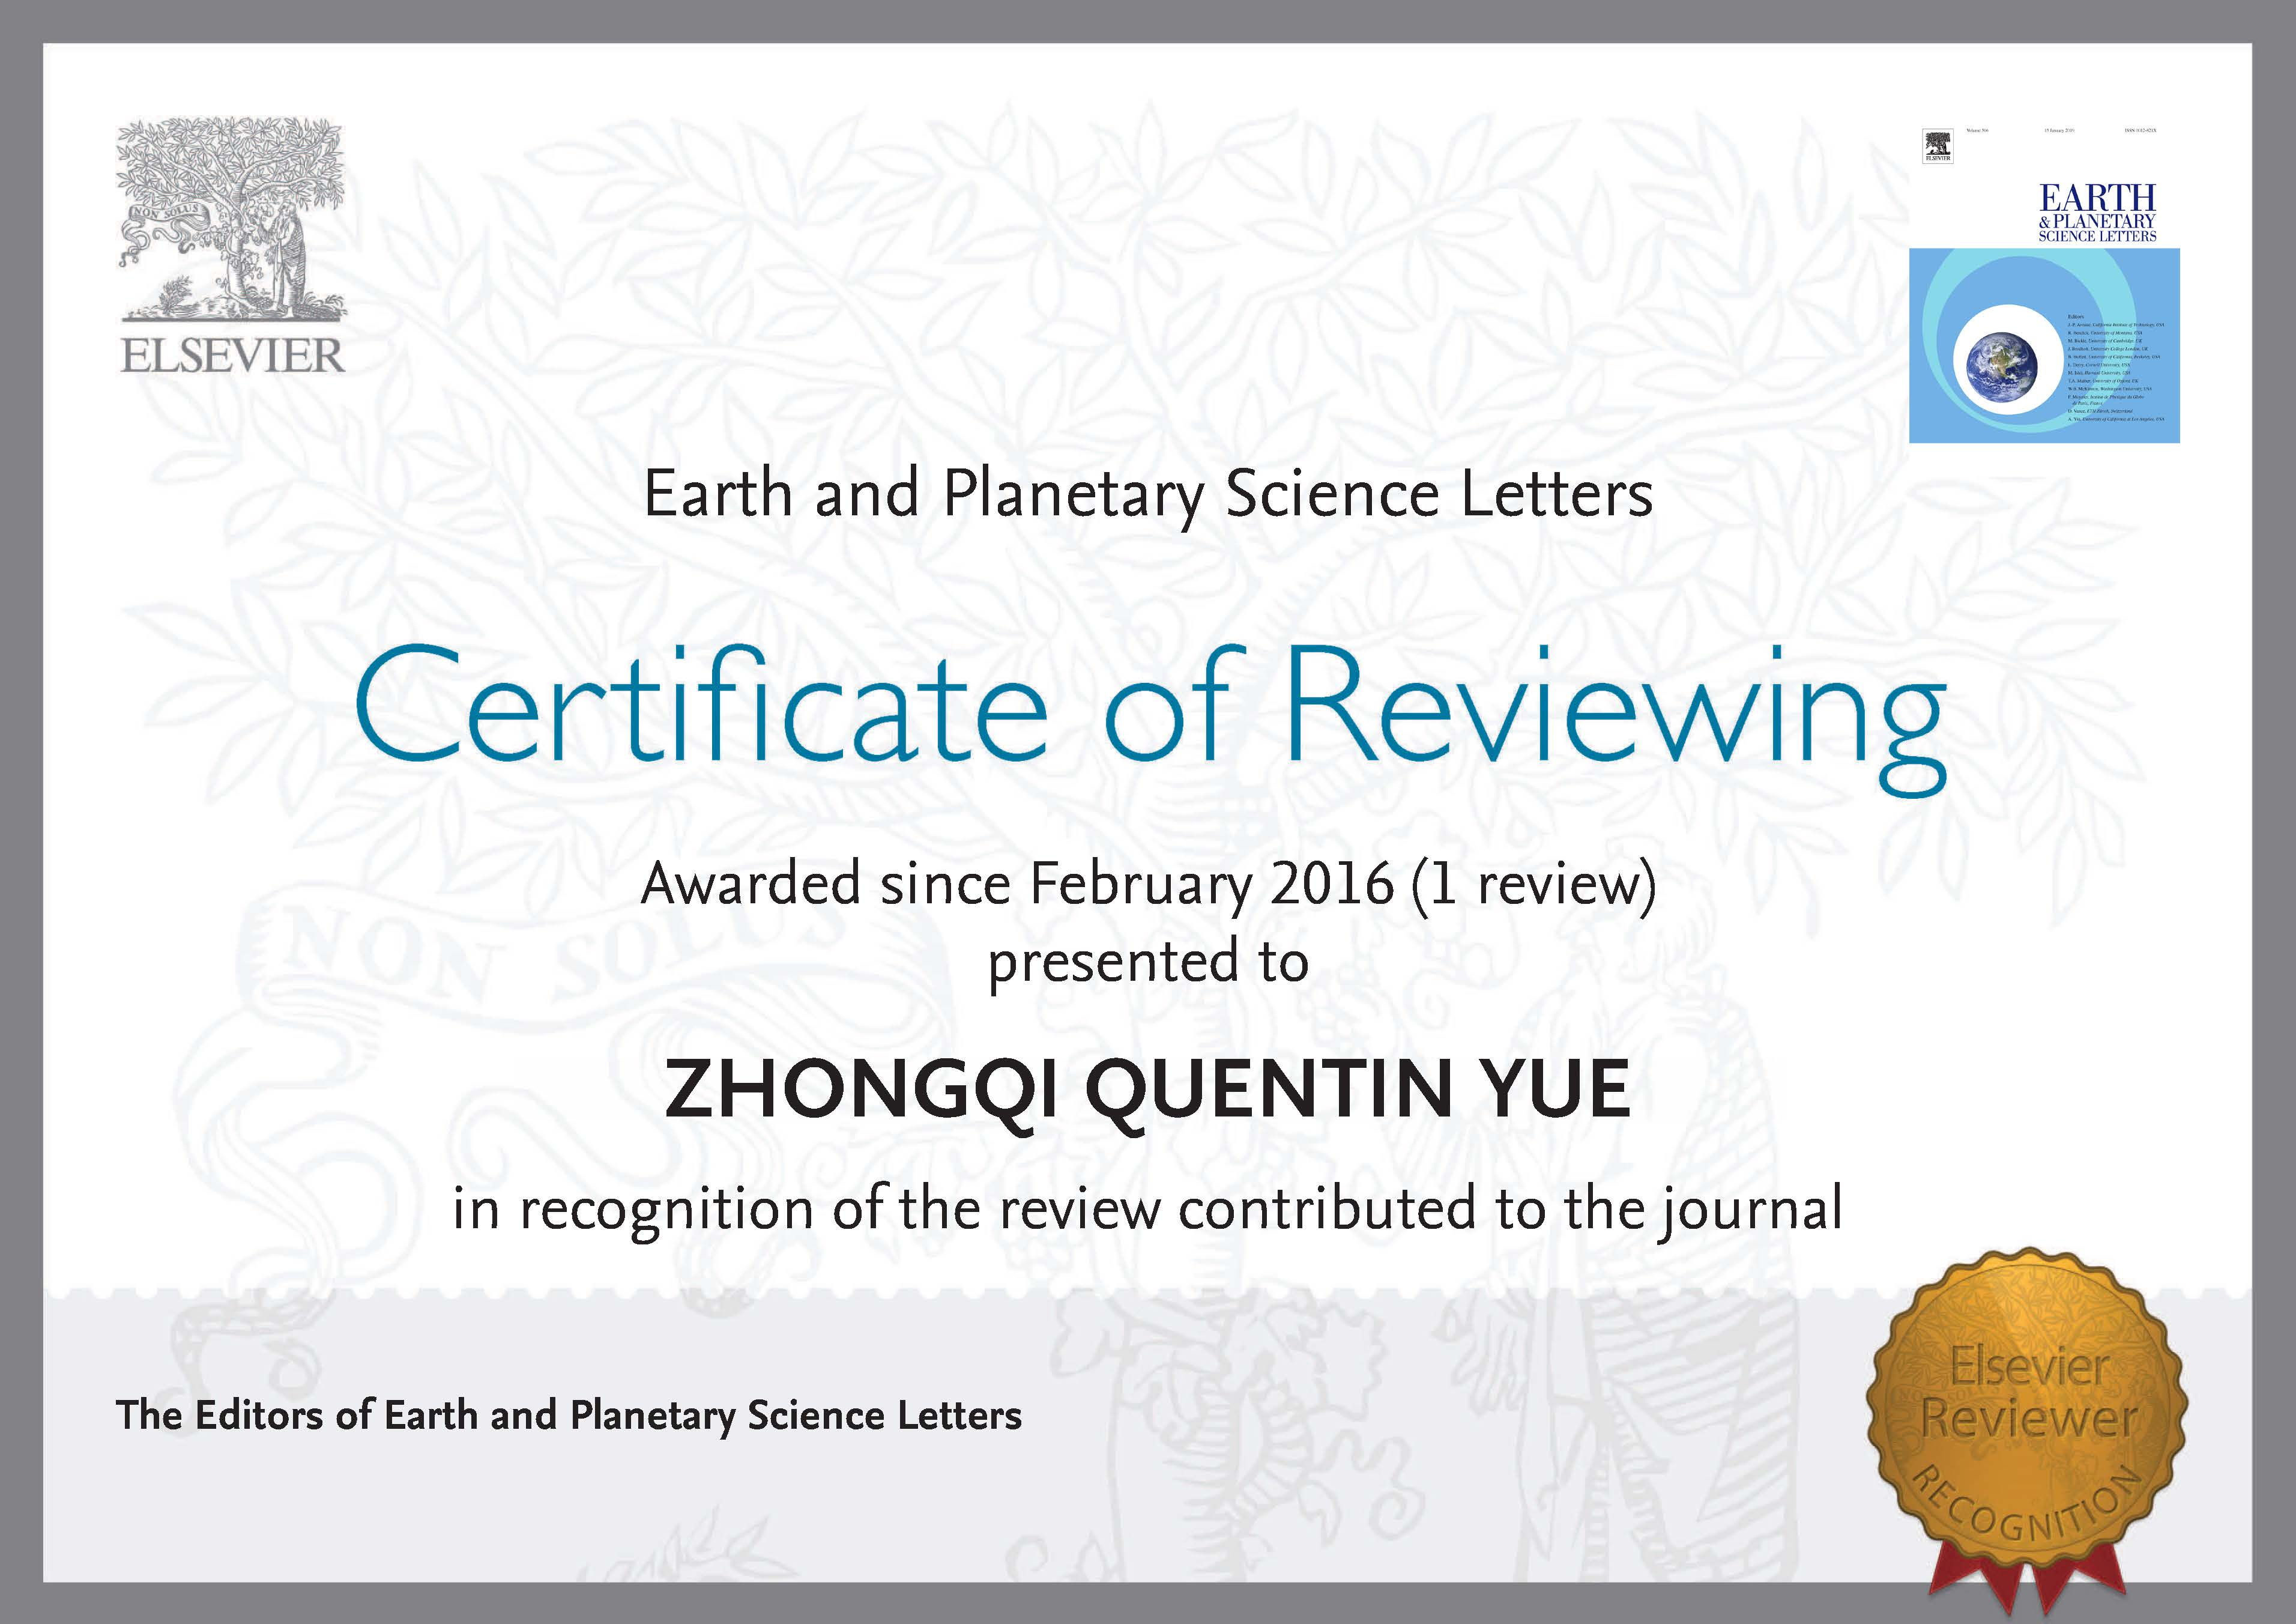 Earth and Planetary Science Letters.jpg